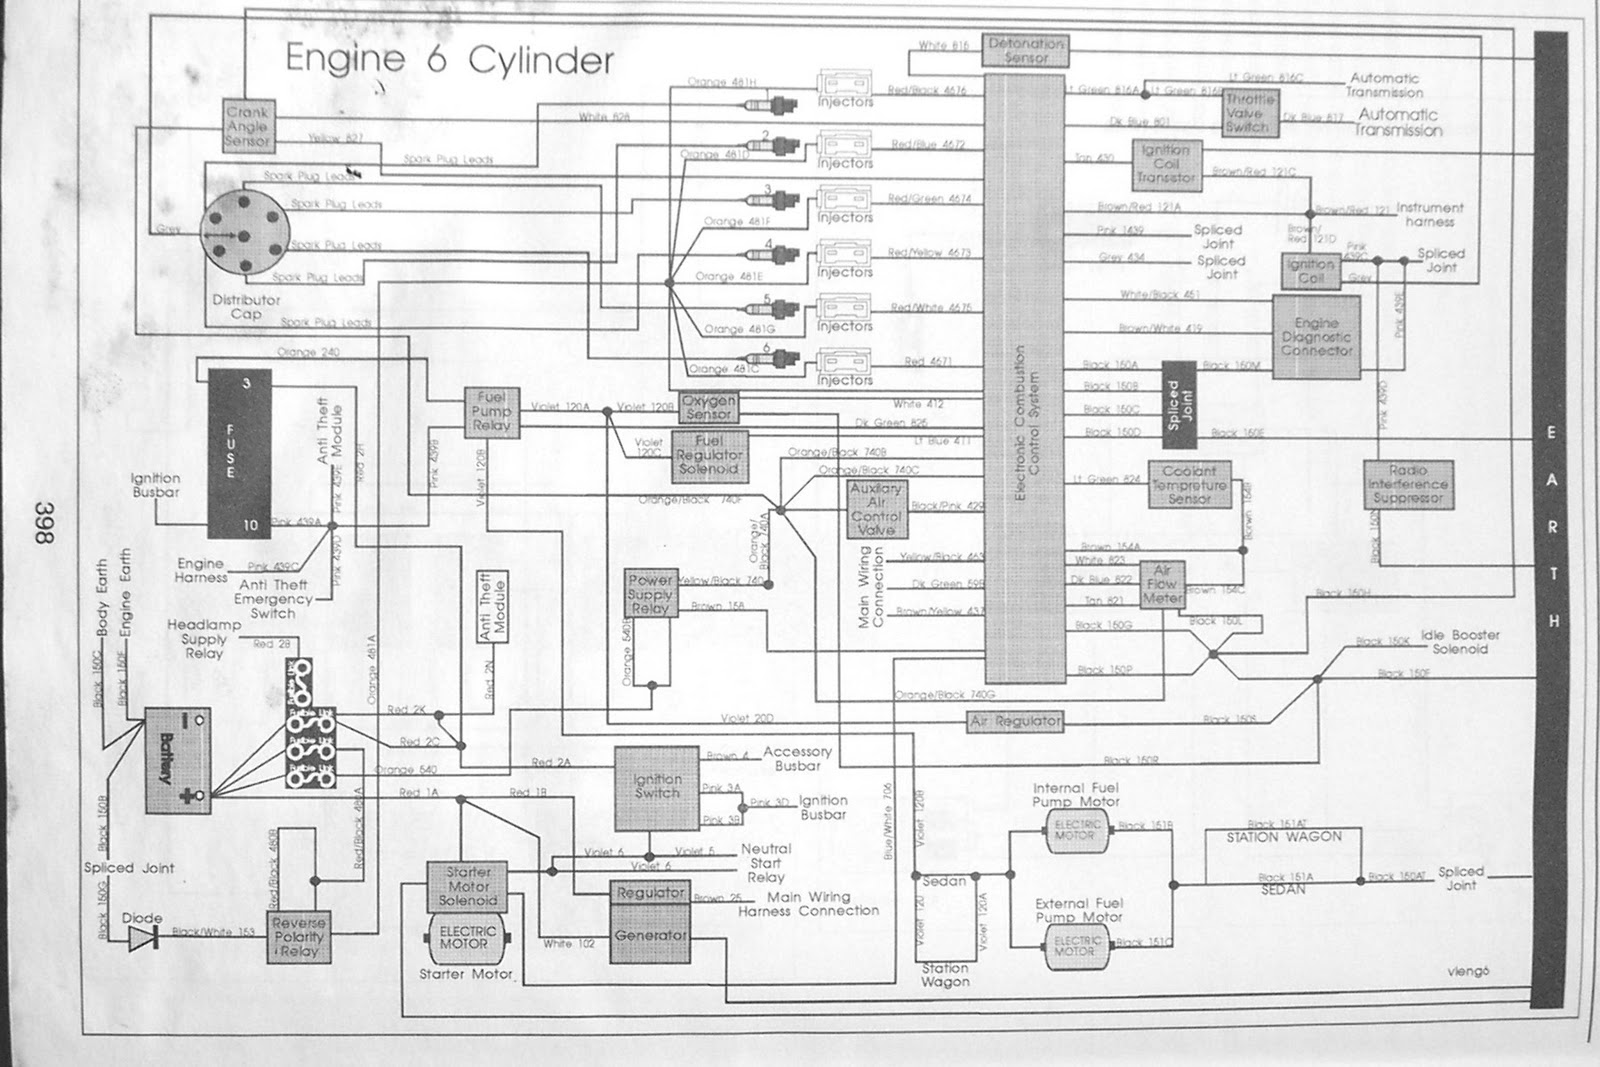 rb30 wiring diagrams 280zx project rh 280zxproject blogspot com vl  commodore wiring diagram vl radio wiring